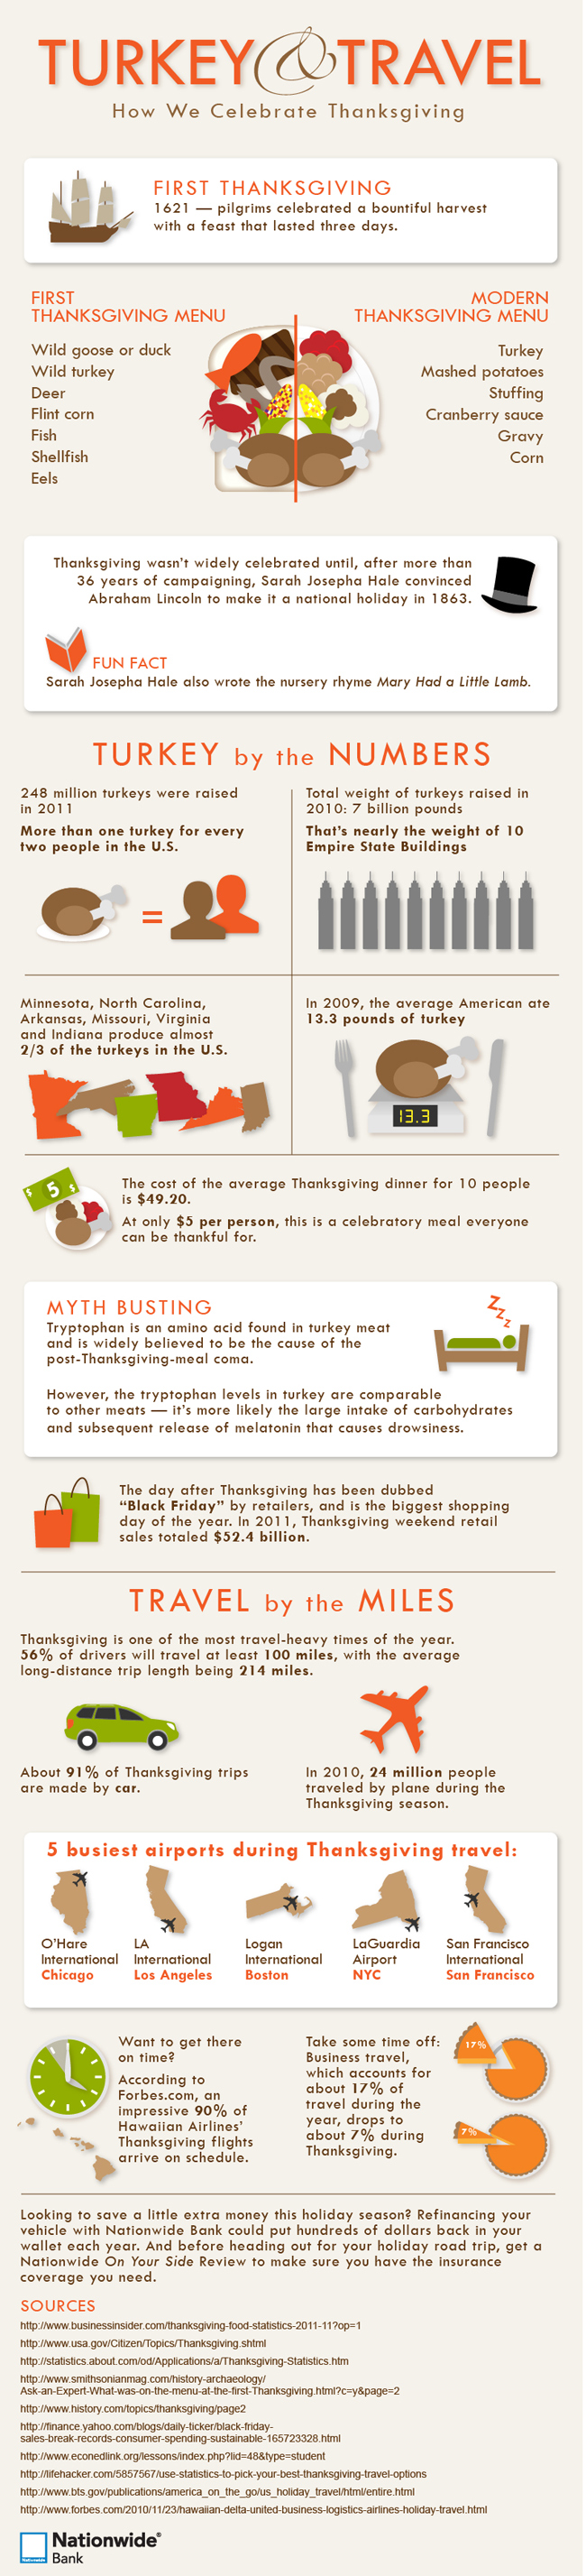 Infographic - Celebrating Thanksgiving